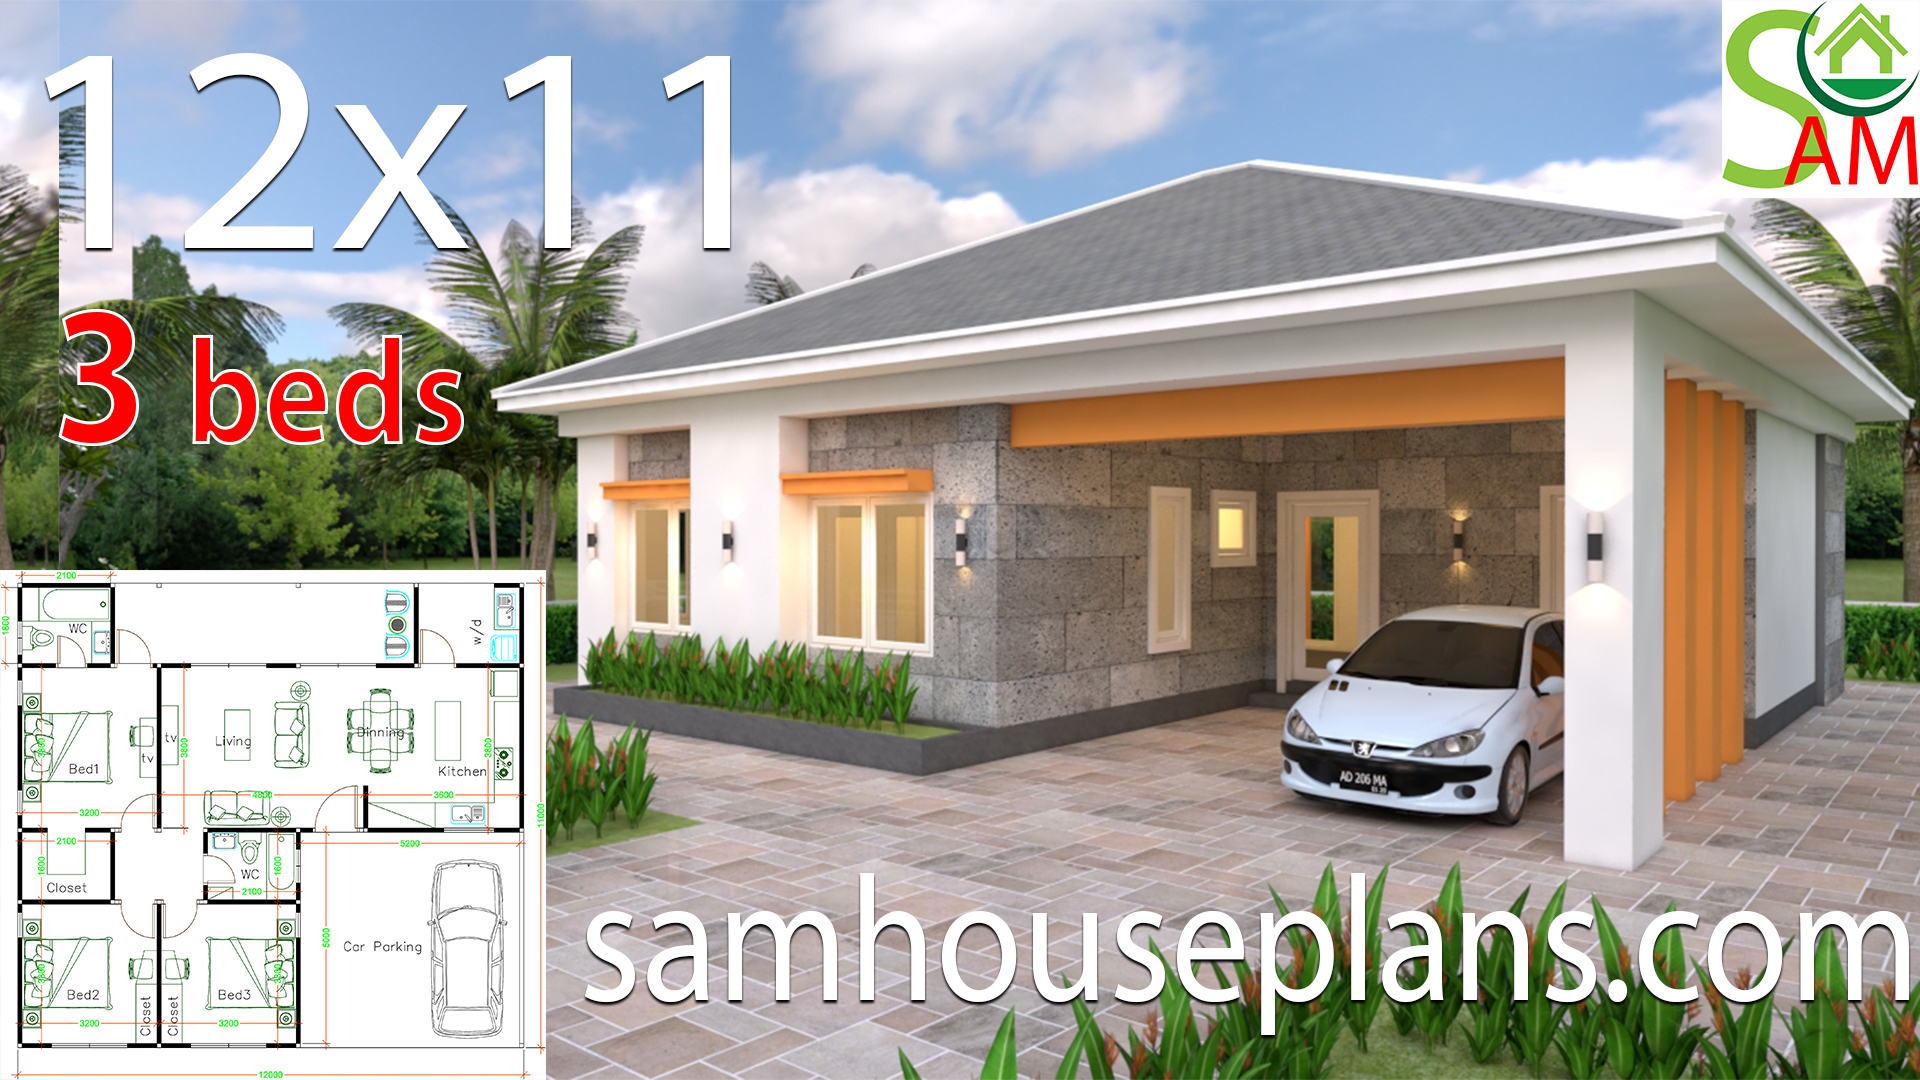 House Plans 12x11 with 3 Bedrooms Hip roof - Sam House Plans